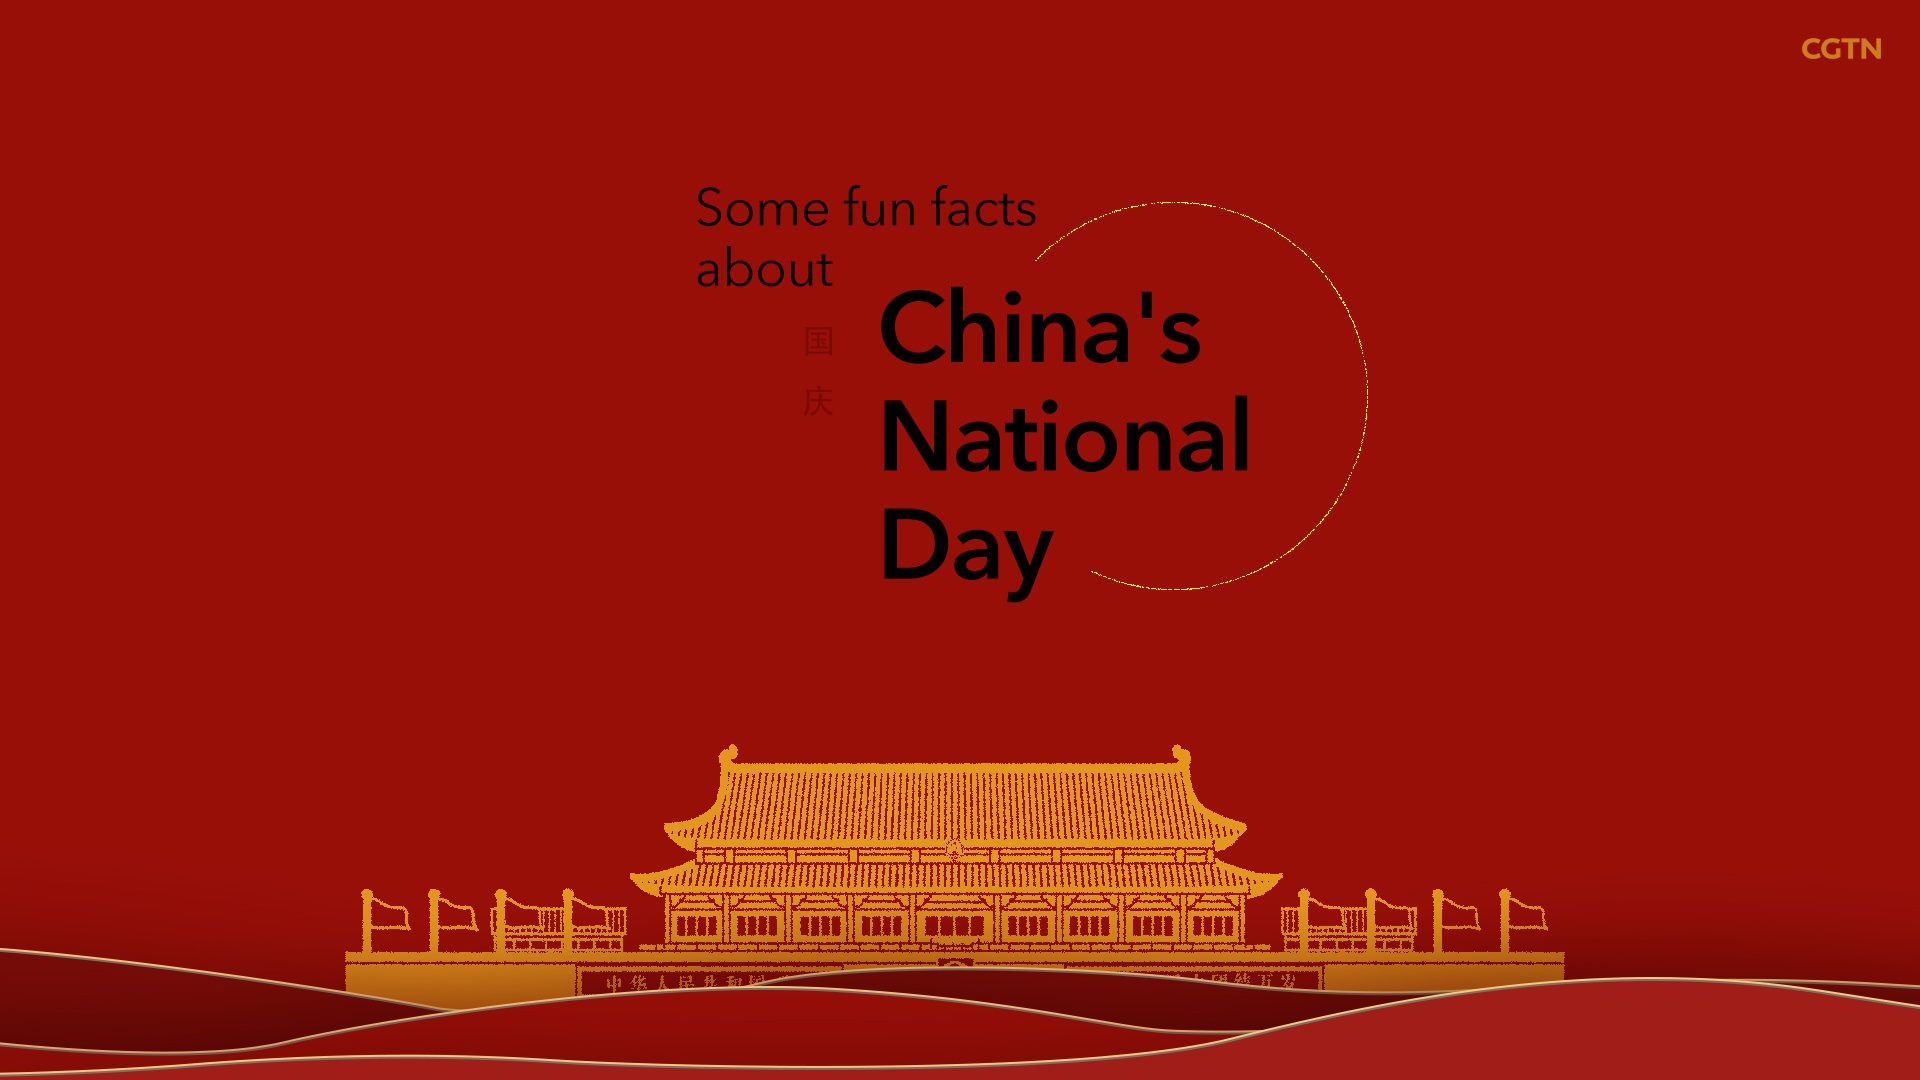 Some fun facts about China's National Day - CGTN